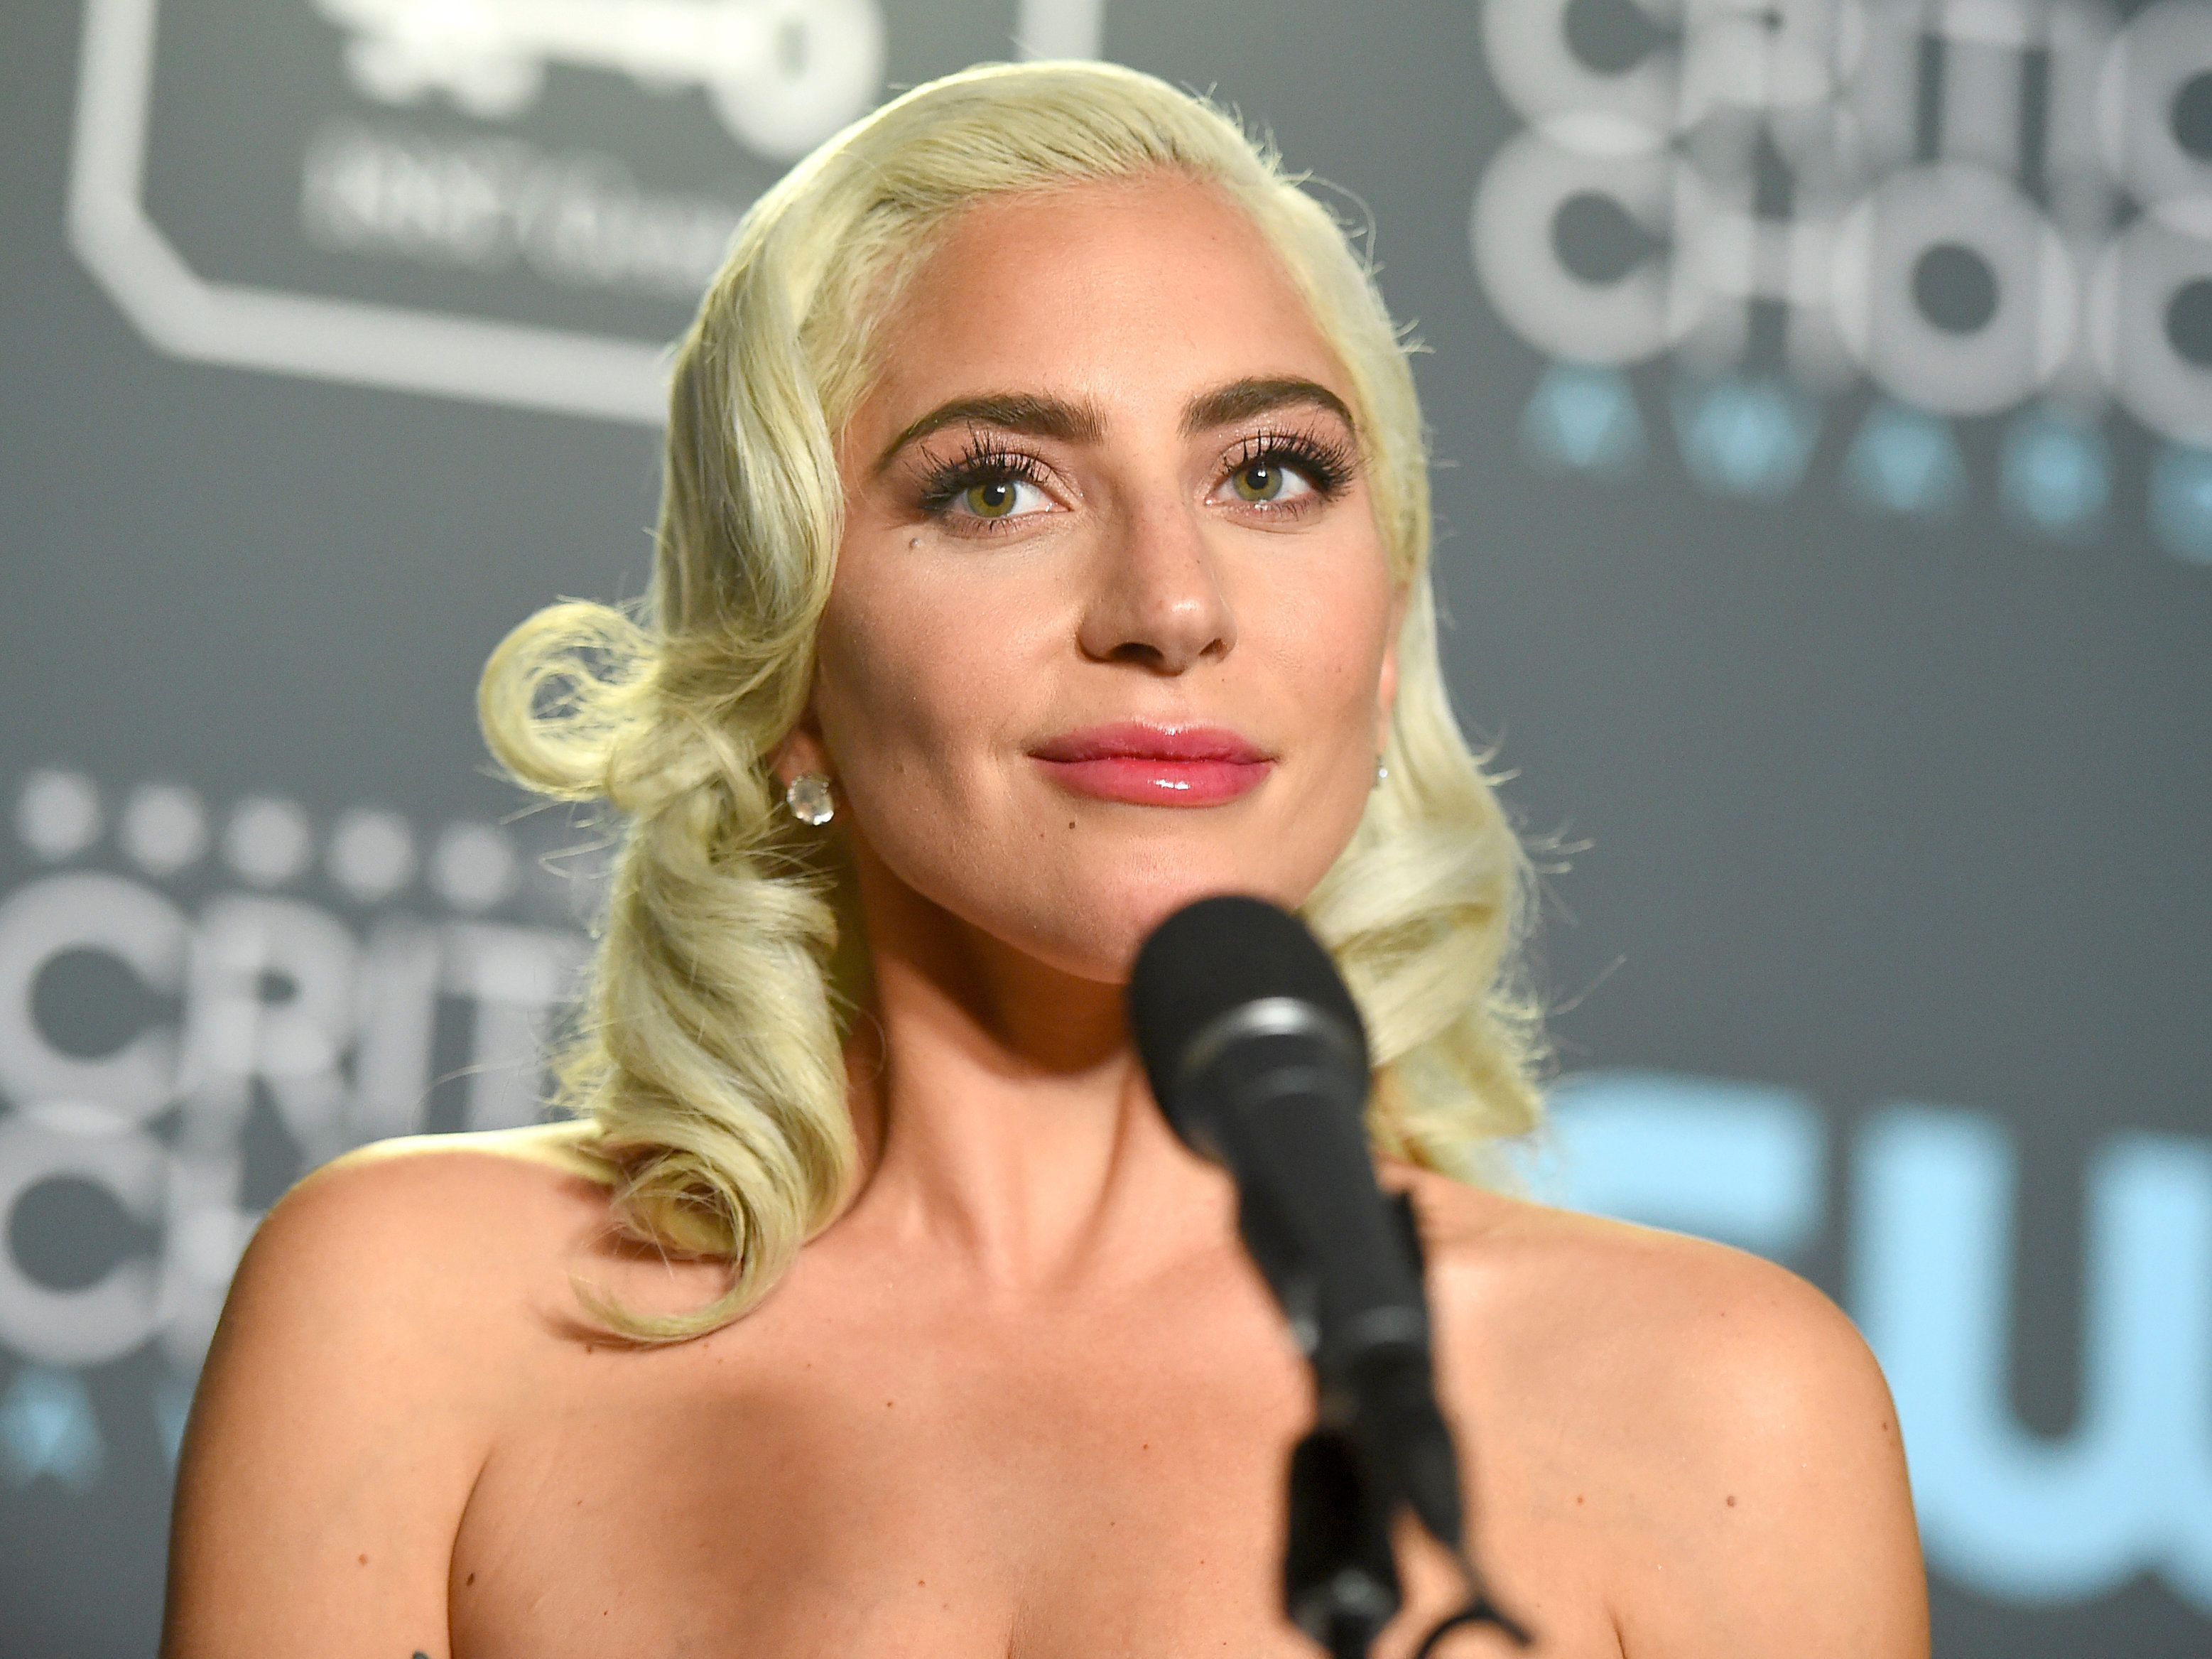 Lady Gaga's Moral Collision With Mike Pence Illustrates How Different Christians Can